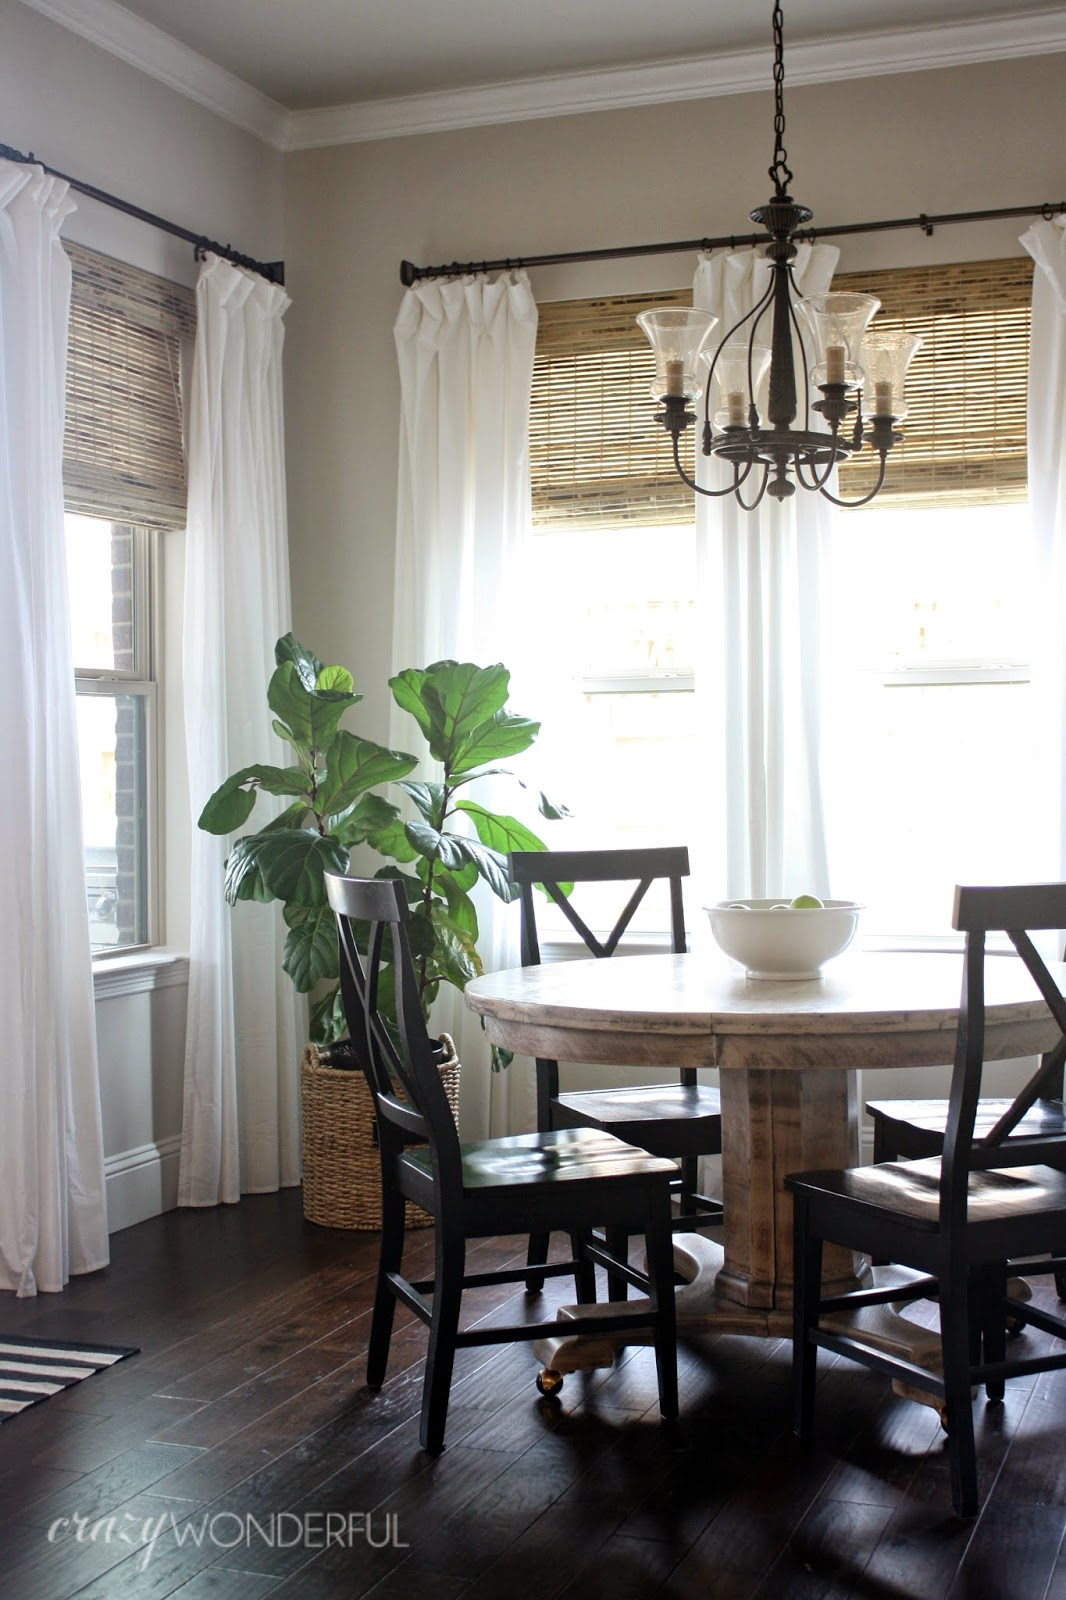 Remodelaholic | 28 Ways to Spruce Up White Curtains on Farmhouse Dining Room Curtain Ideas  id=73237